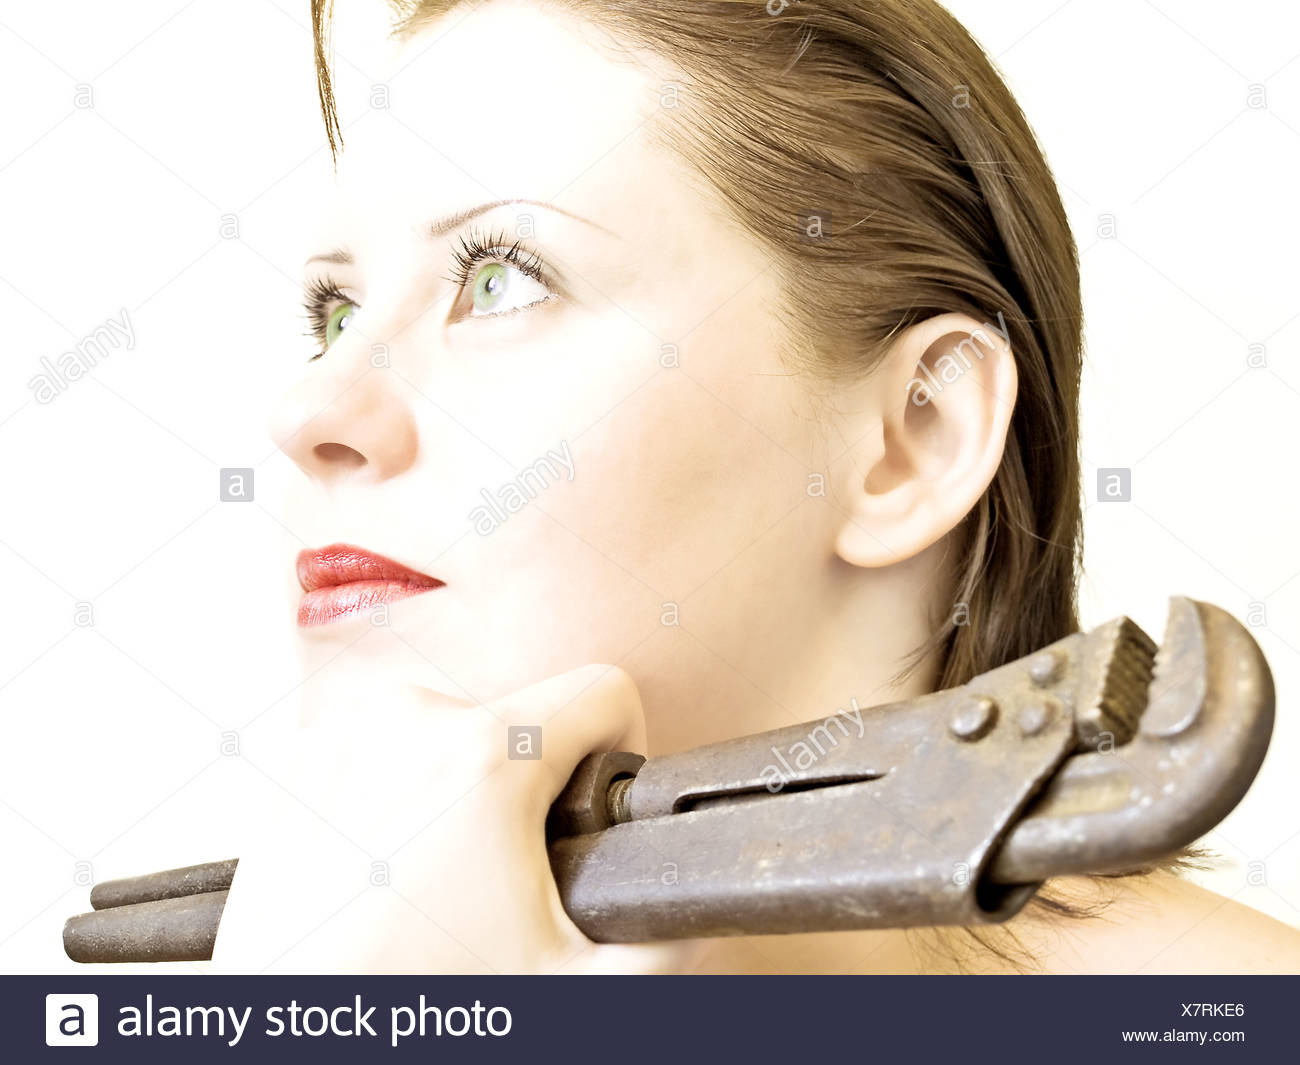 waiting for a husband - Stock Image